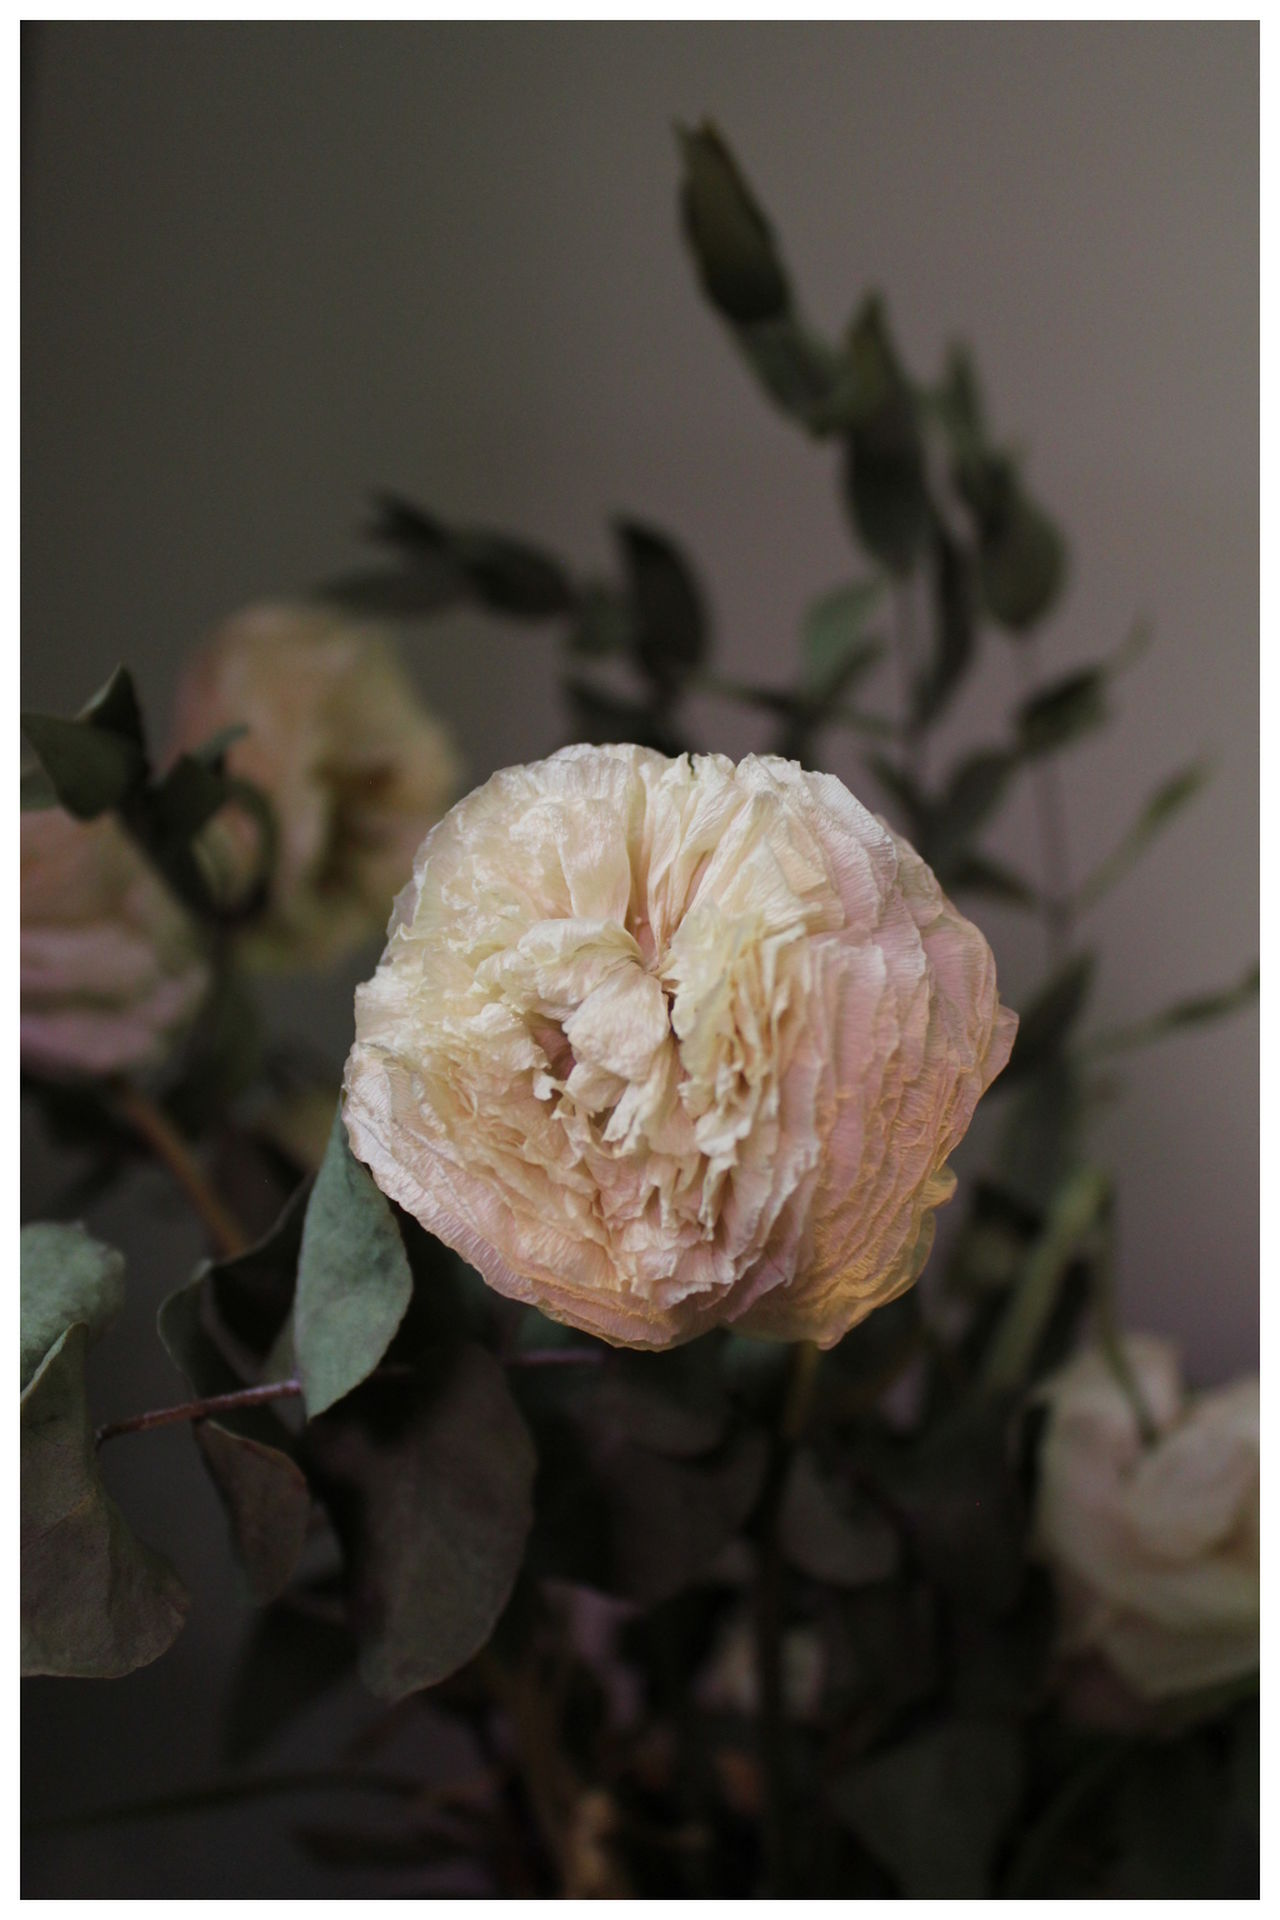 Beautiful Flower Close-up Dried Flowers Flower Fragility No Filter Plant Ranunculus Ranunkel  Wilted Flower